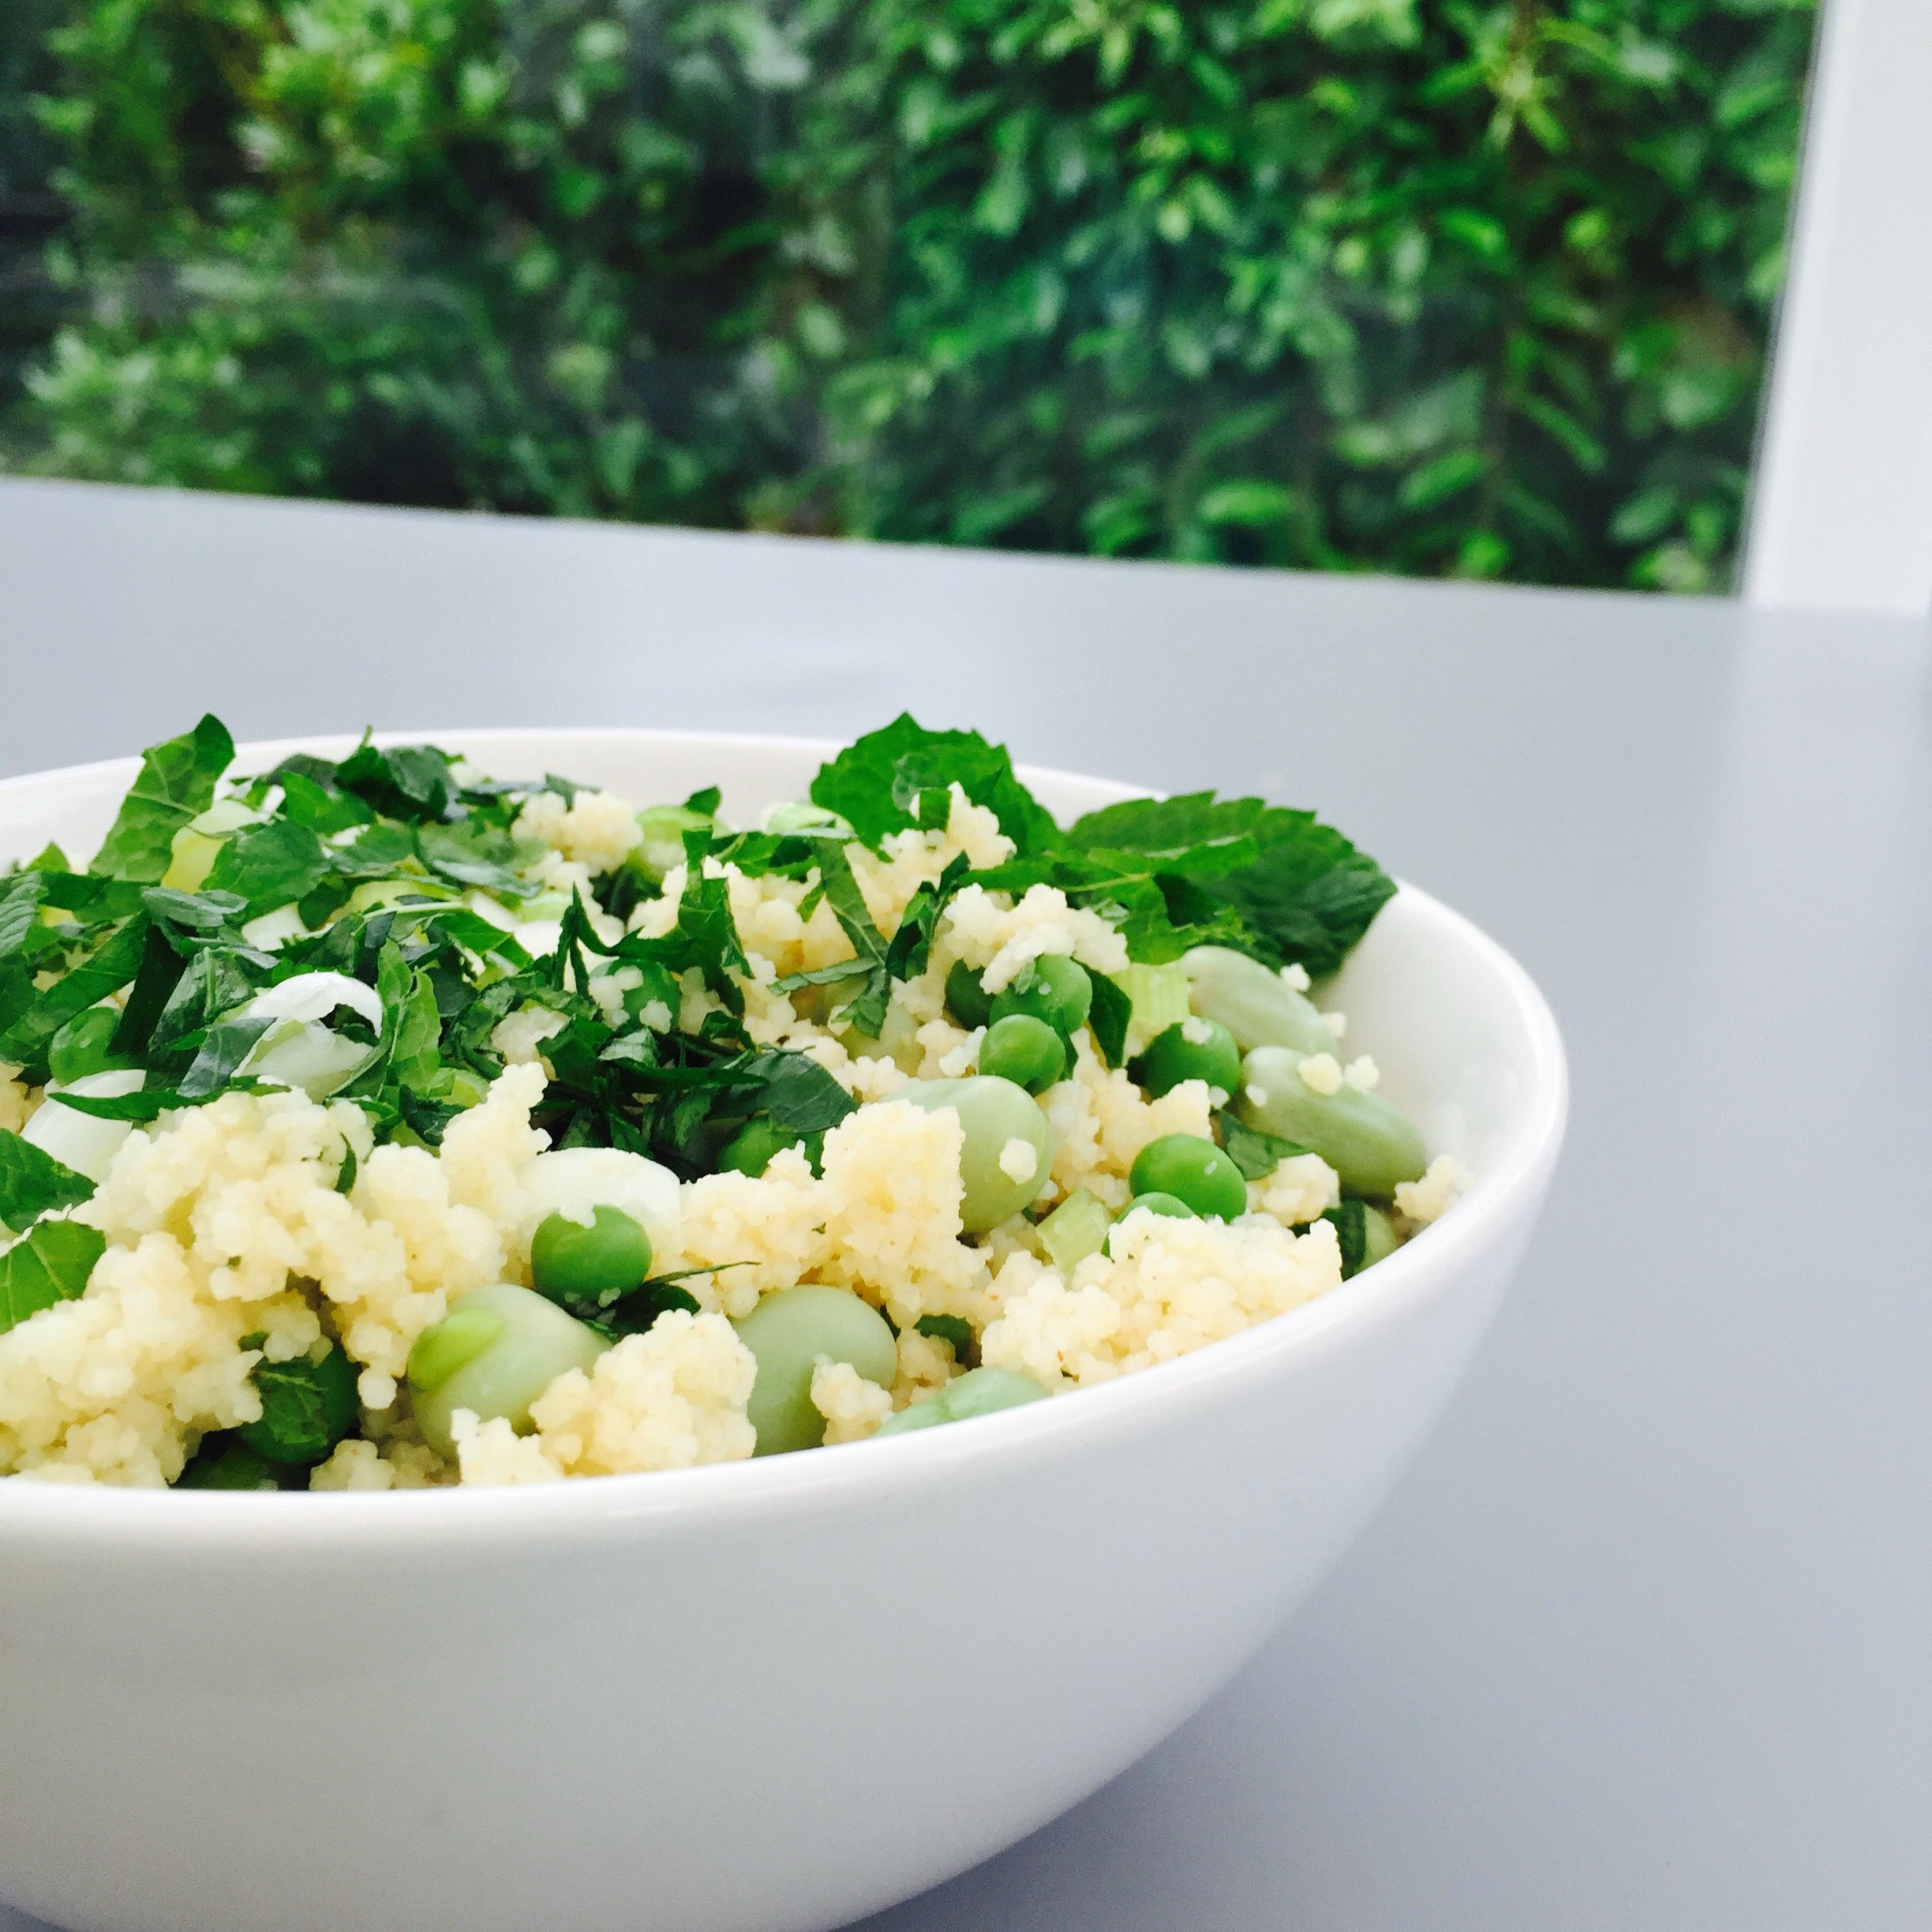 Lemony couscous with peas and beans